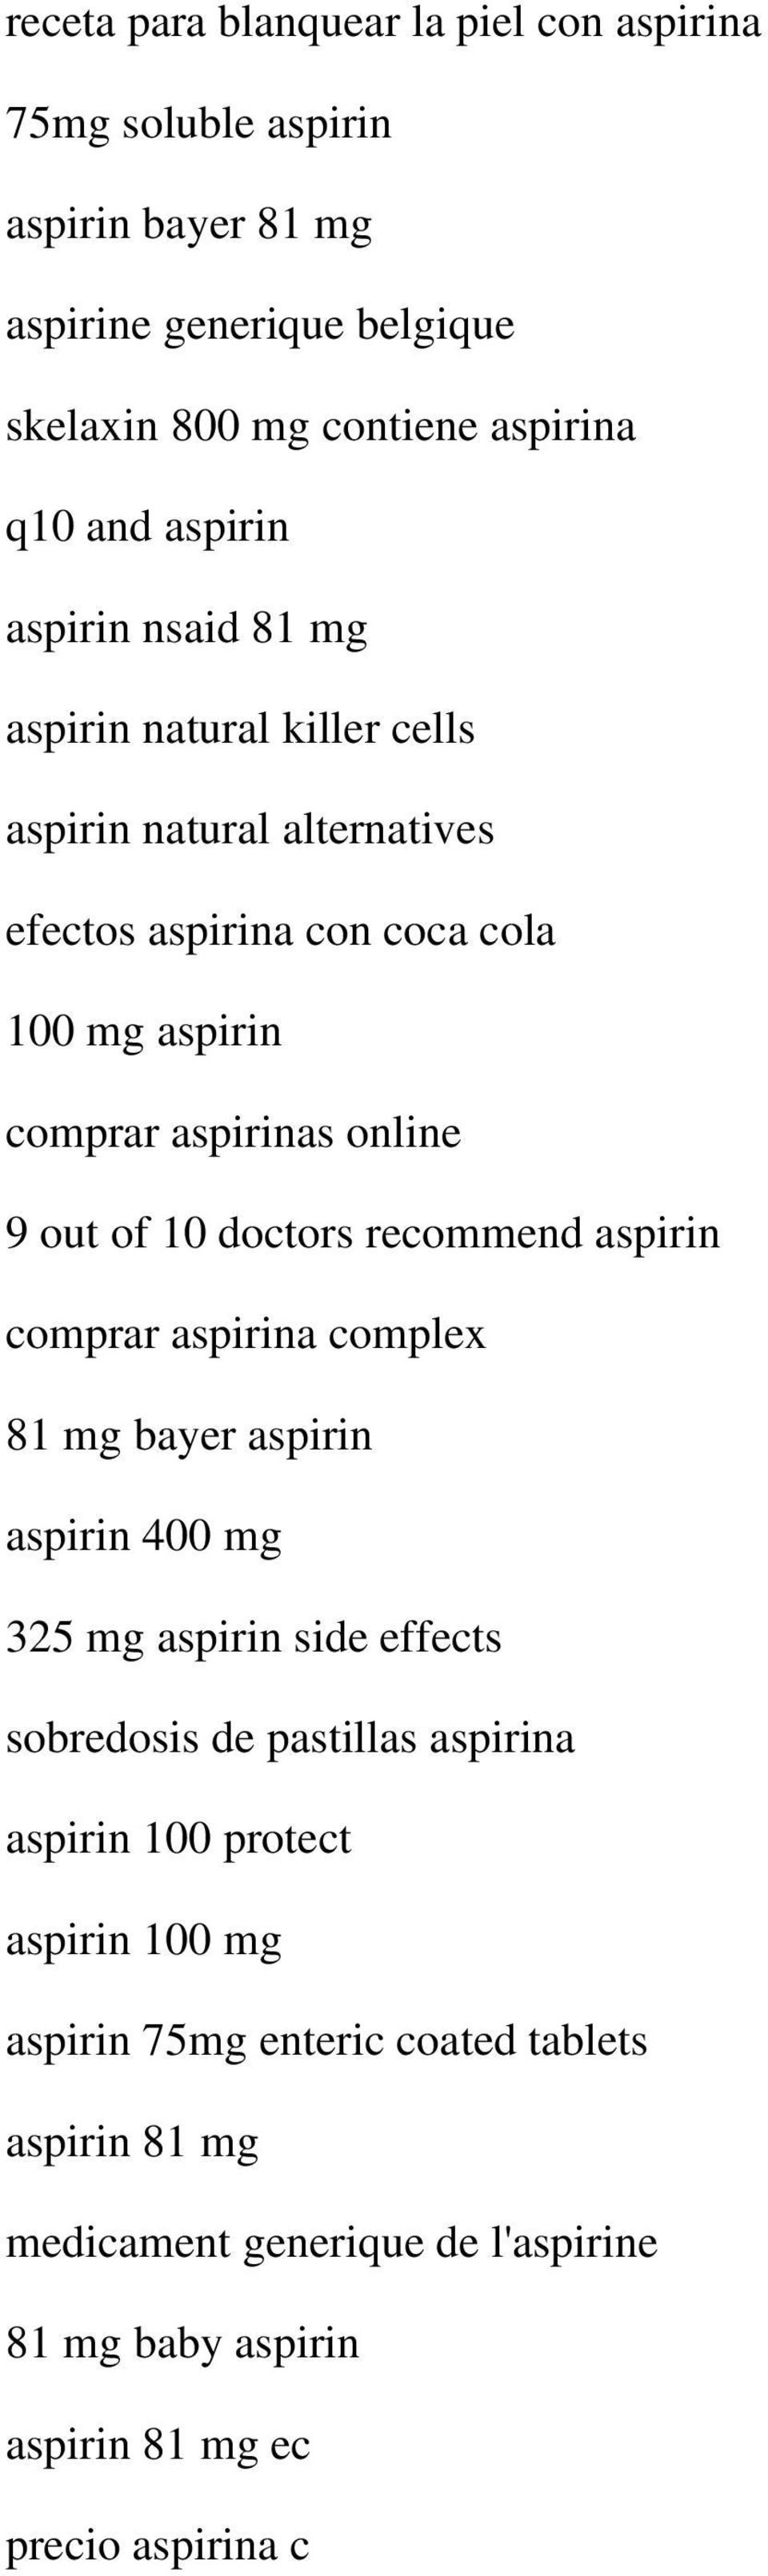 out of 10 doctors recommend aspirin comprar aspirina complex 81 mg bayer aspirin aspirin 400 mg 325 mg aspirin side effects sobredosis de pastillas aspirina